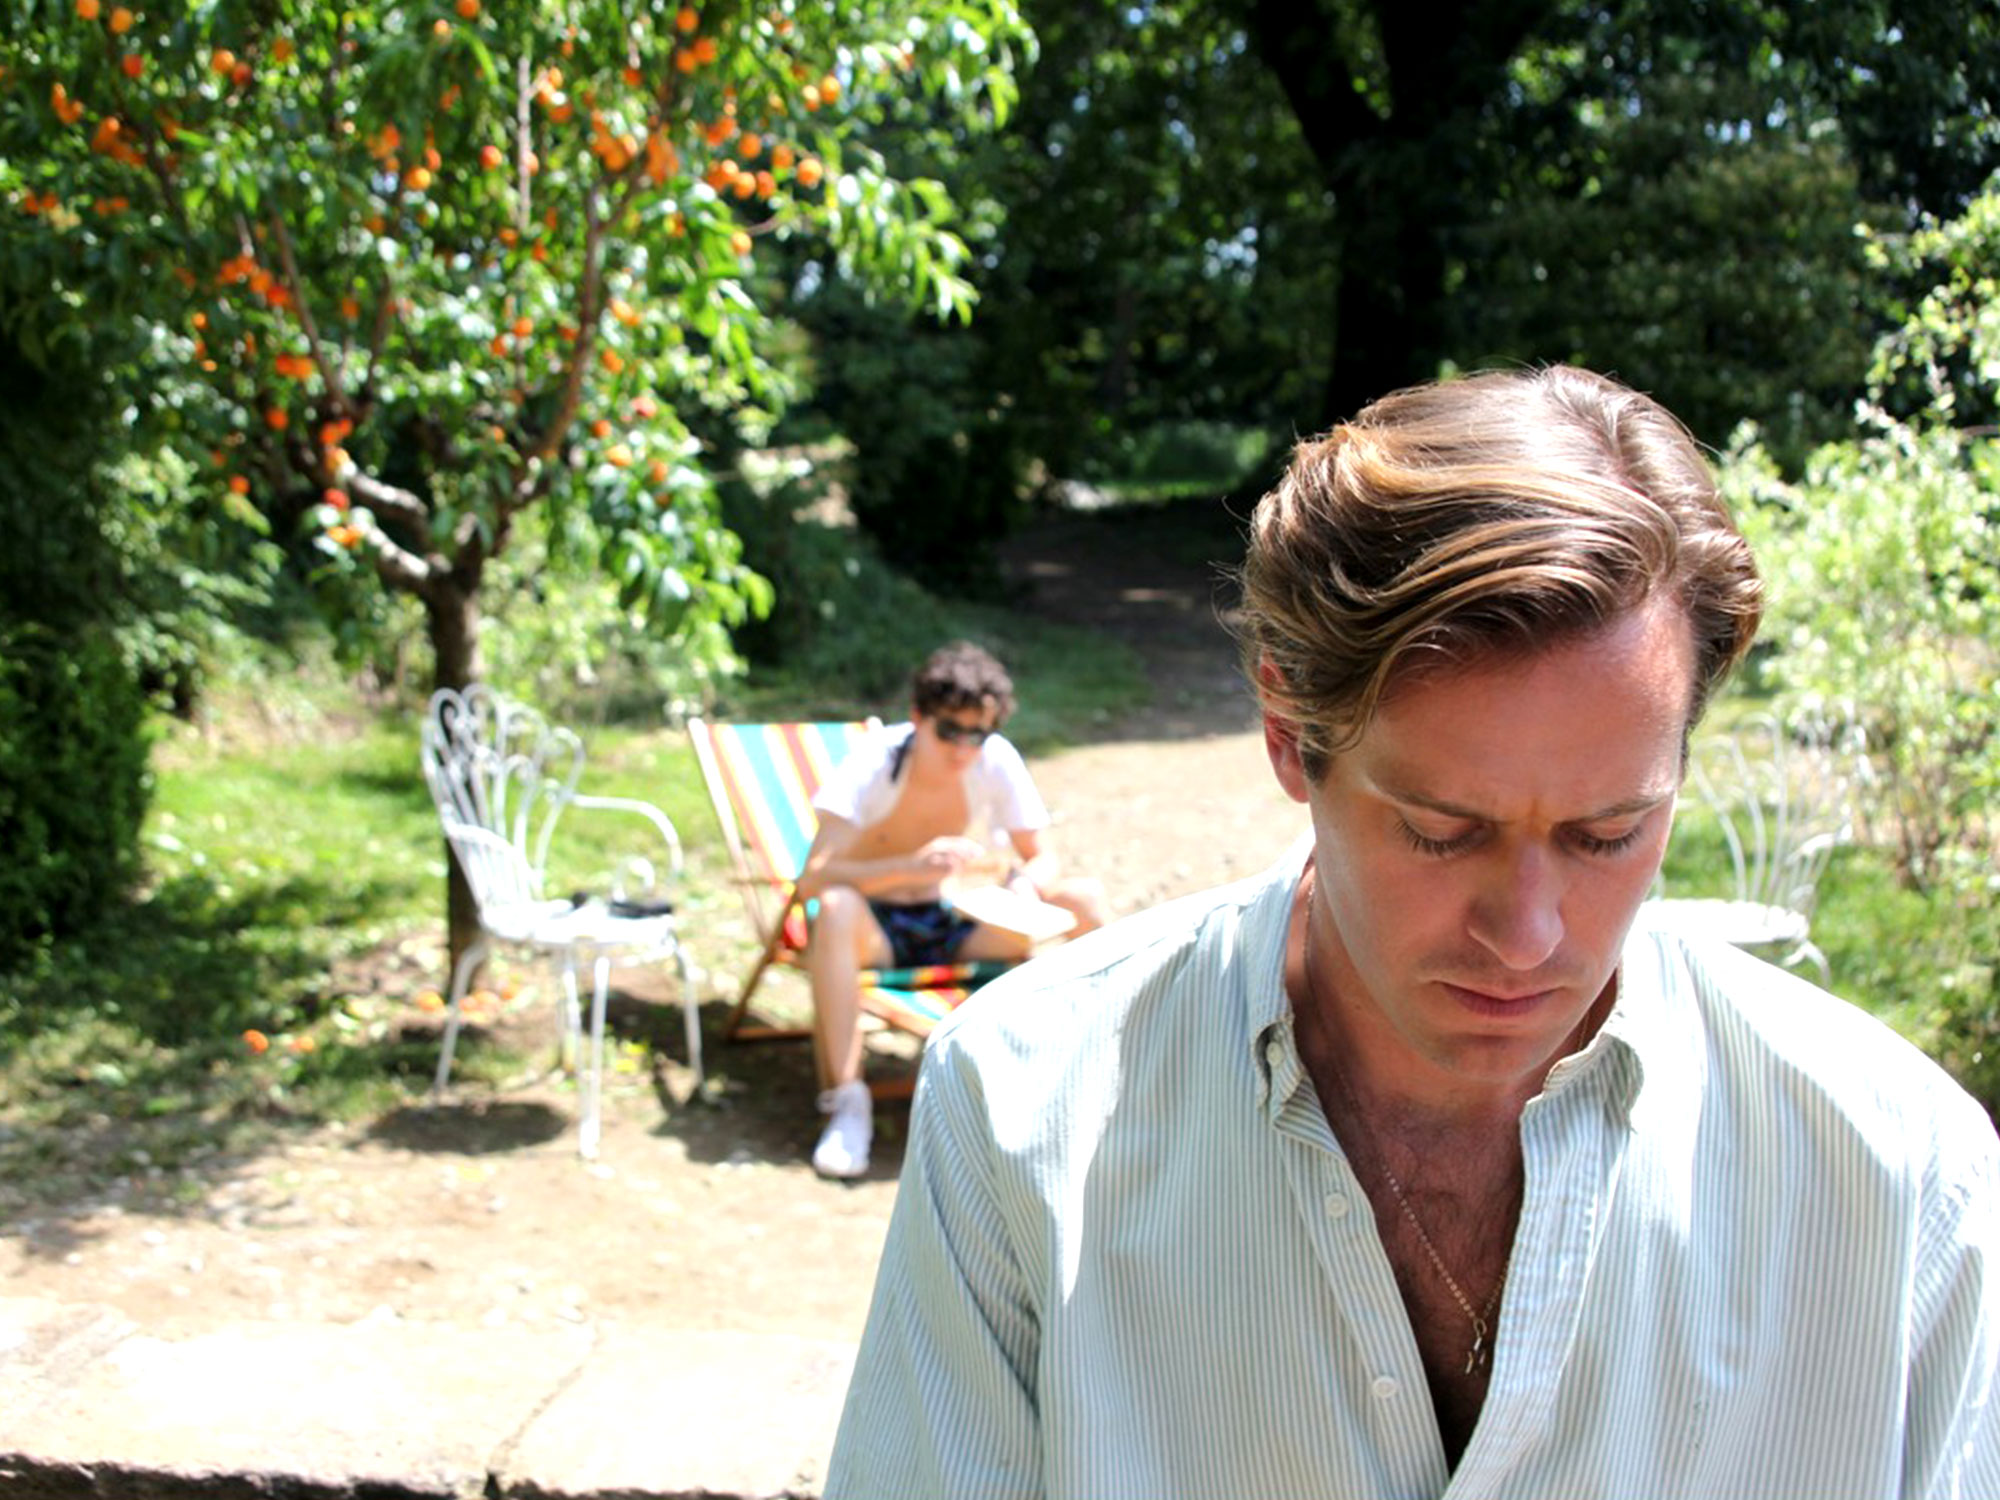 Call Me by Your Name probably won't win Best Picture. Here's why.